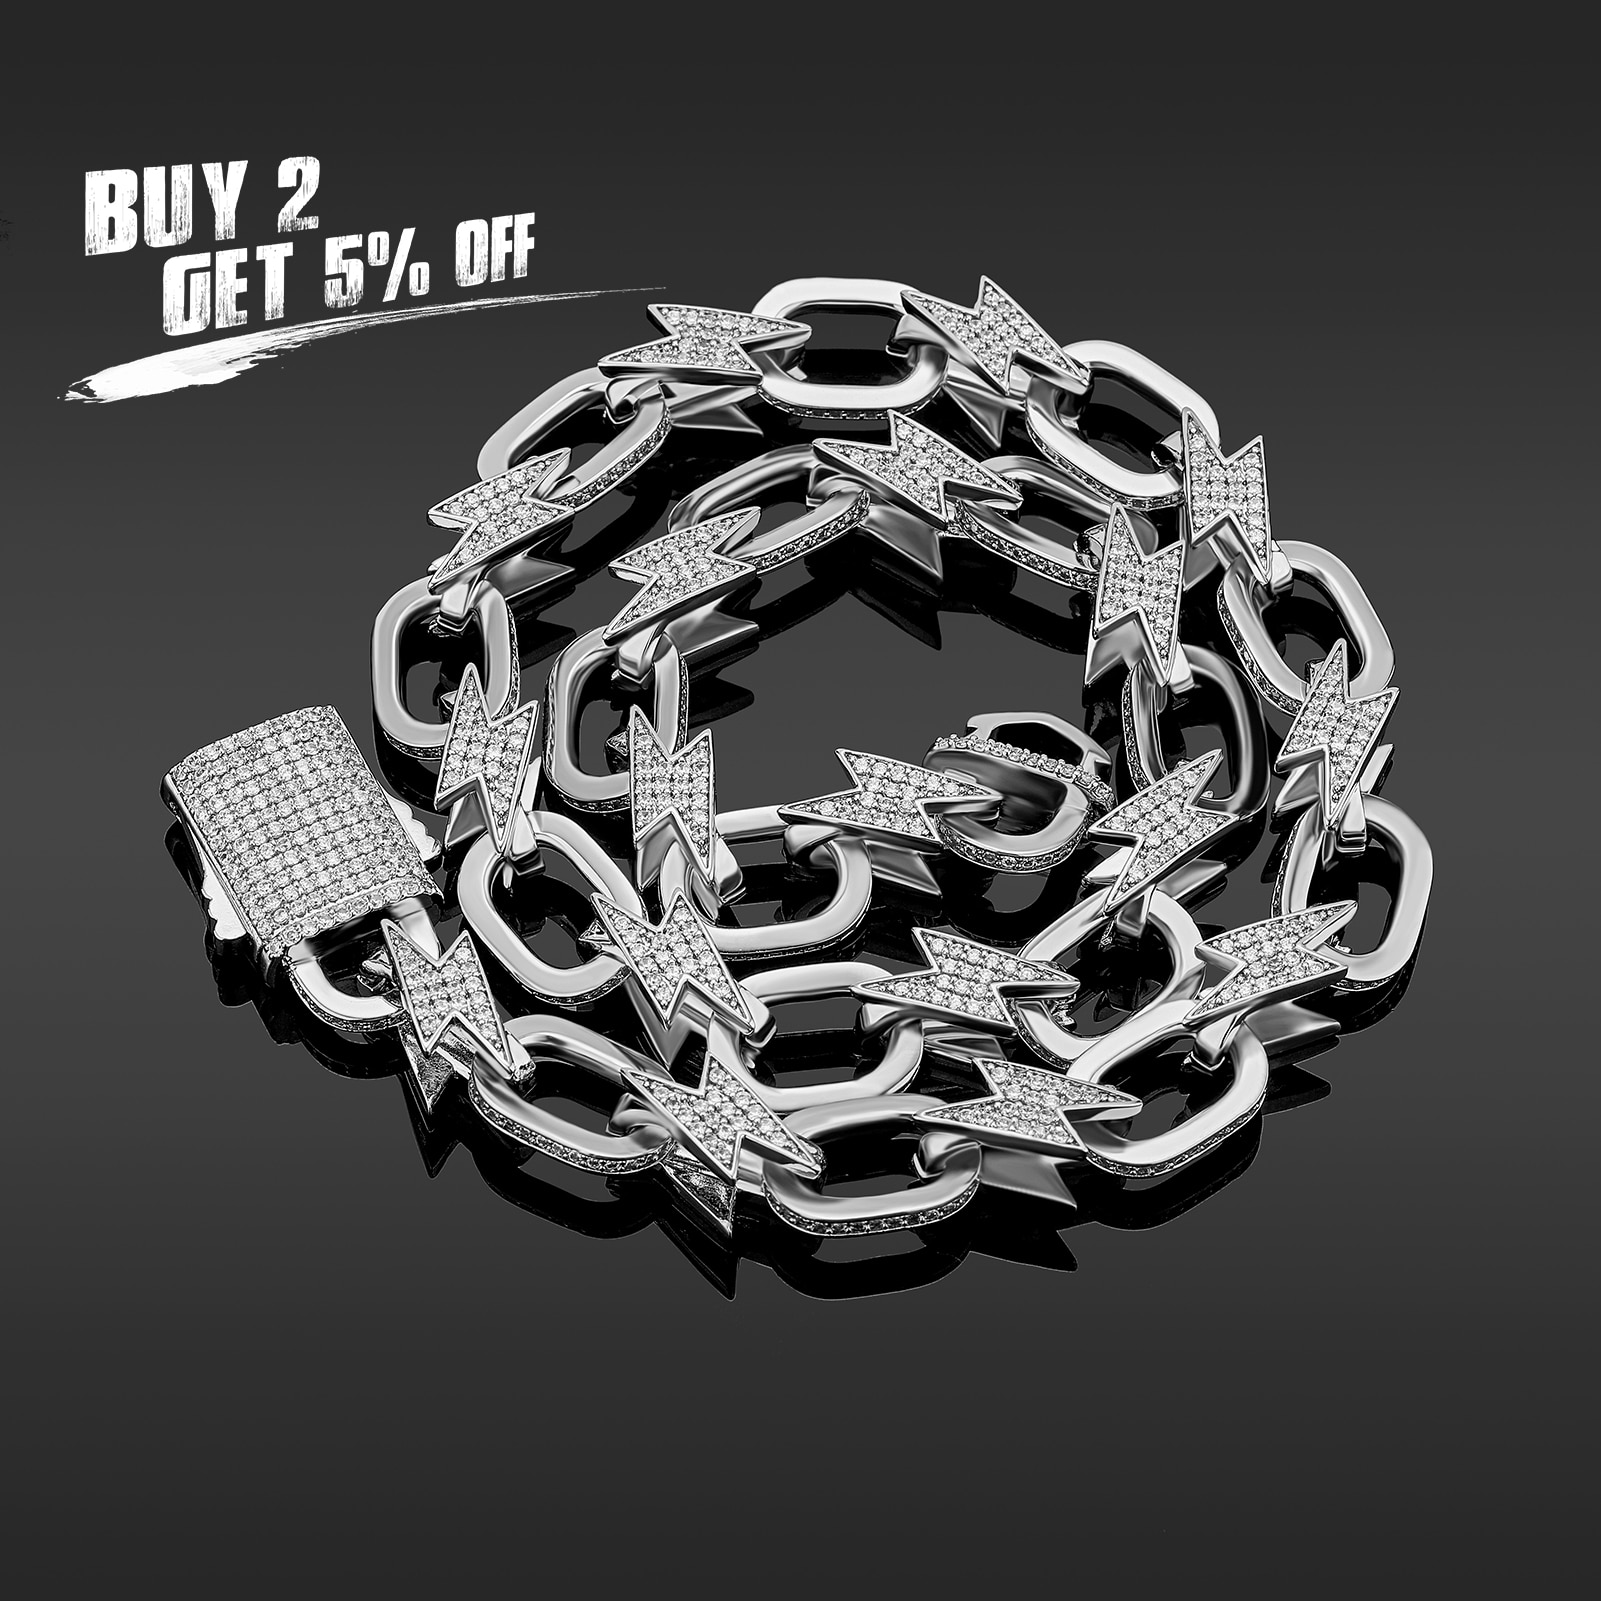 JINAO 2021 NEW Fashion Miami Spring Clasp Cuban Link Chain Lightning Necklace Charm Iced Out AAA+ Cubic Zirconia for Men Jewelry